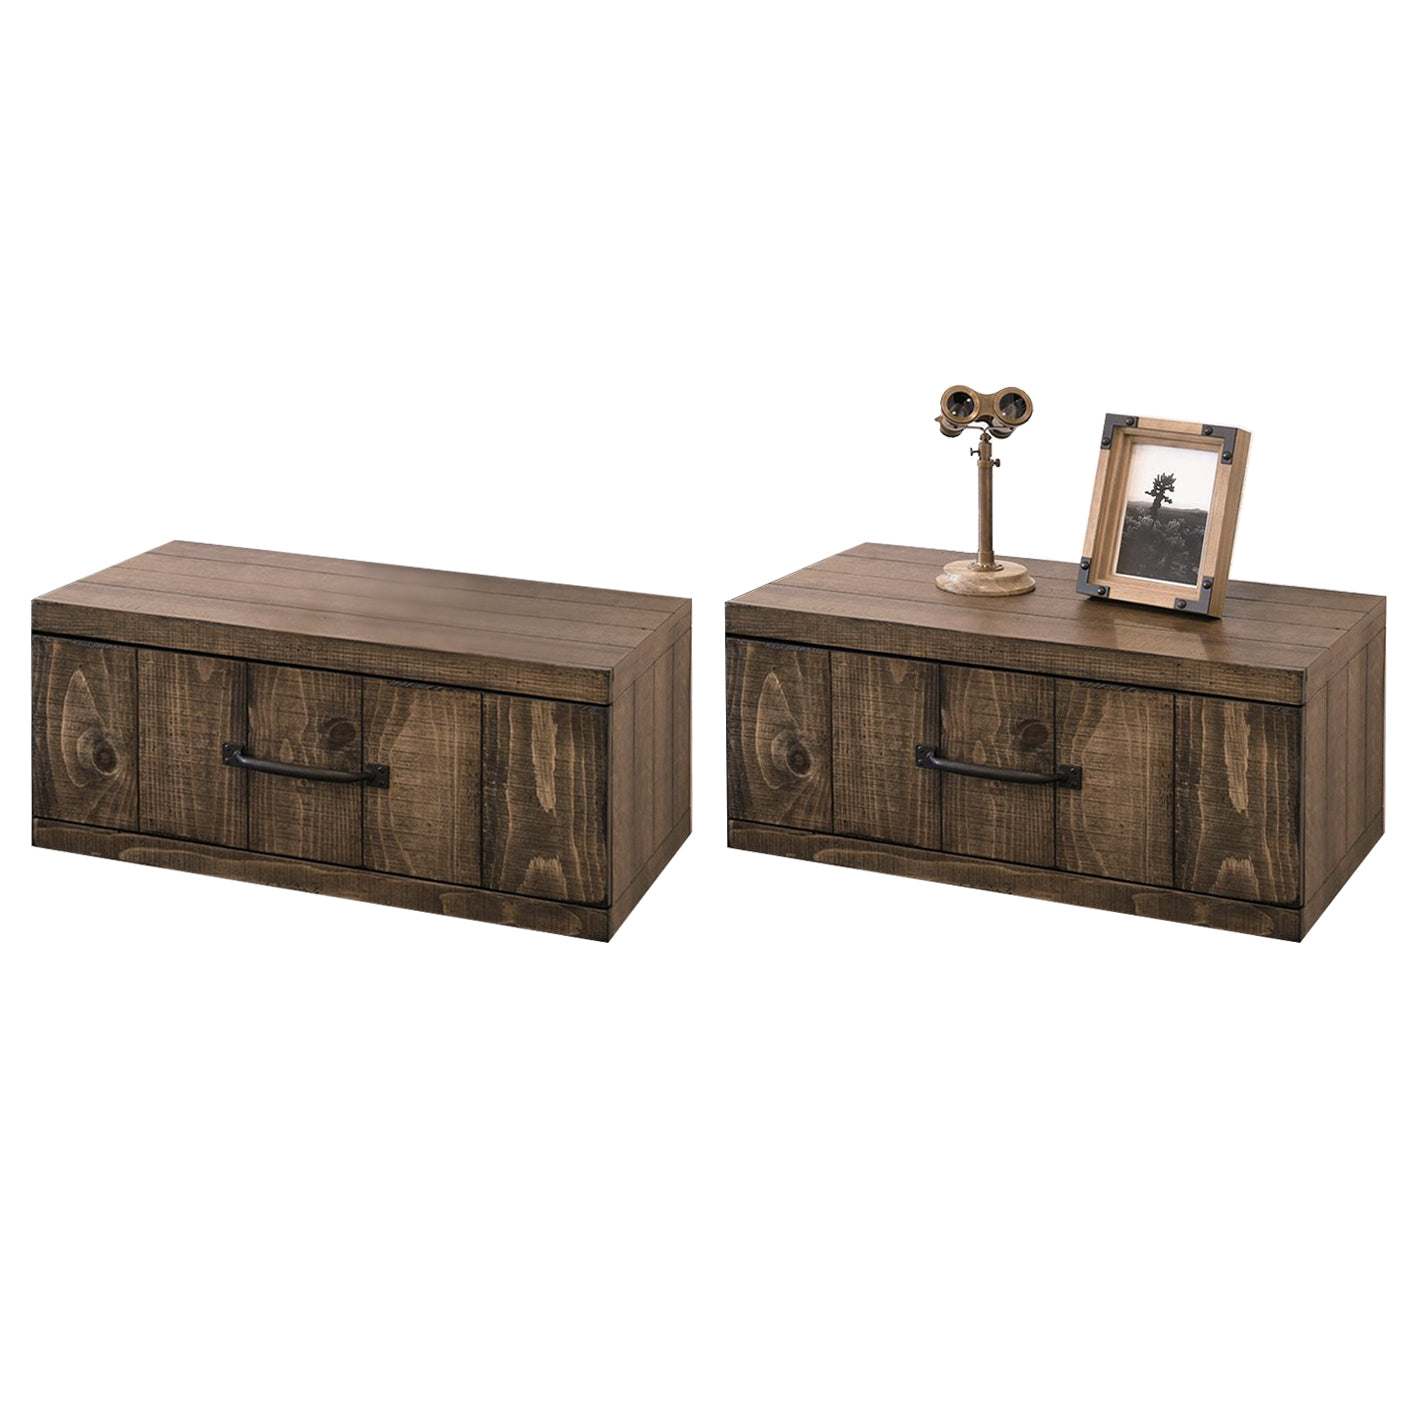 Rustic Wall Mounted Nightstands Farmhouse Floating Drawers